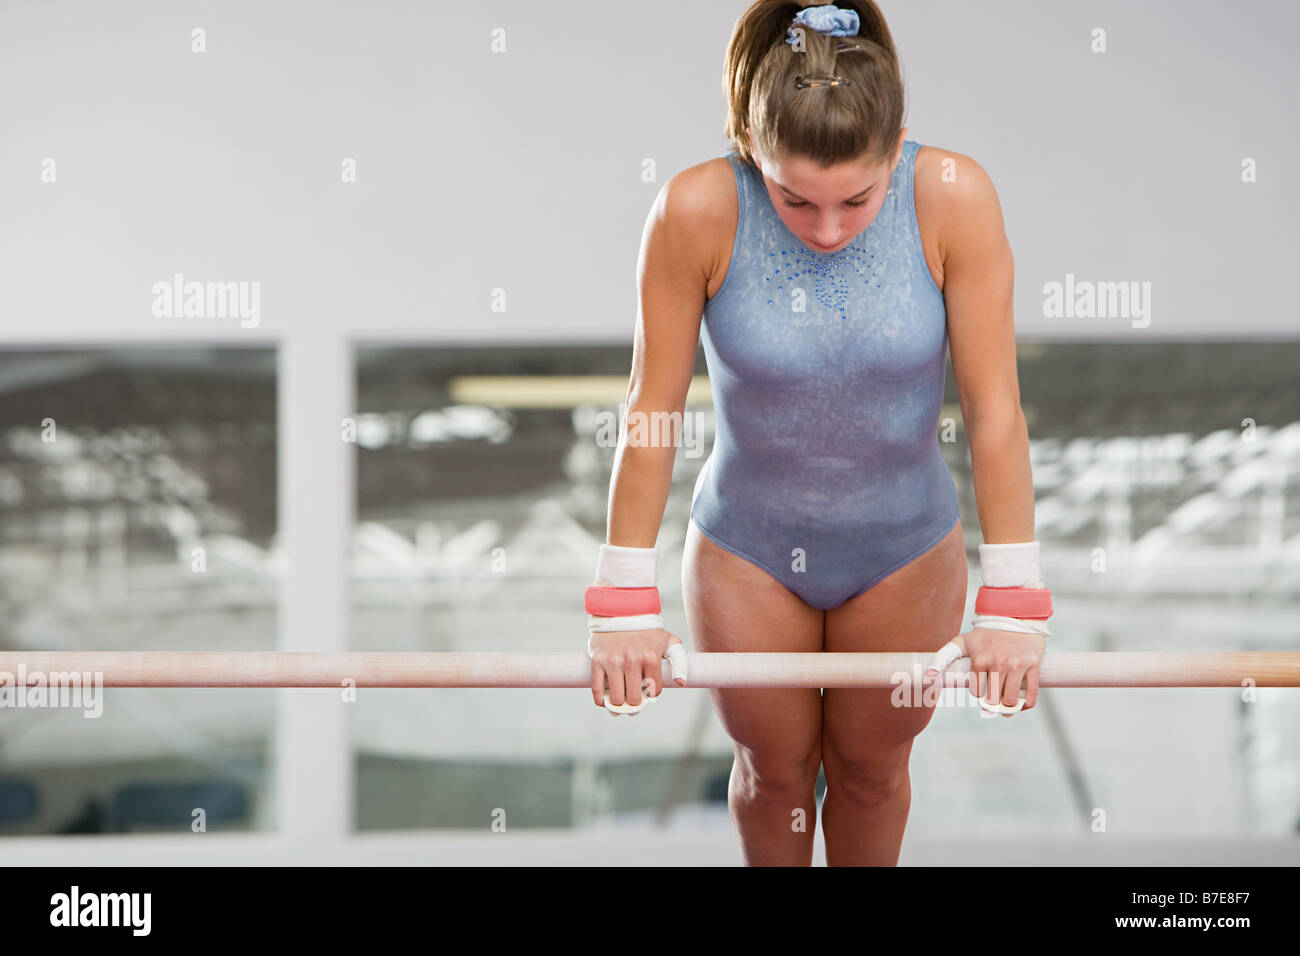 Gymnast on an uneven parallel bar - Stock Image